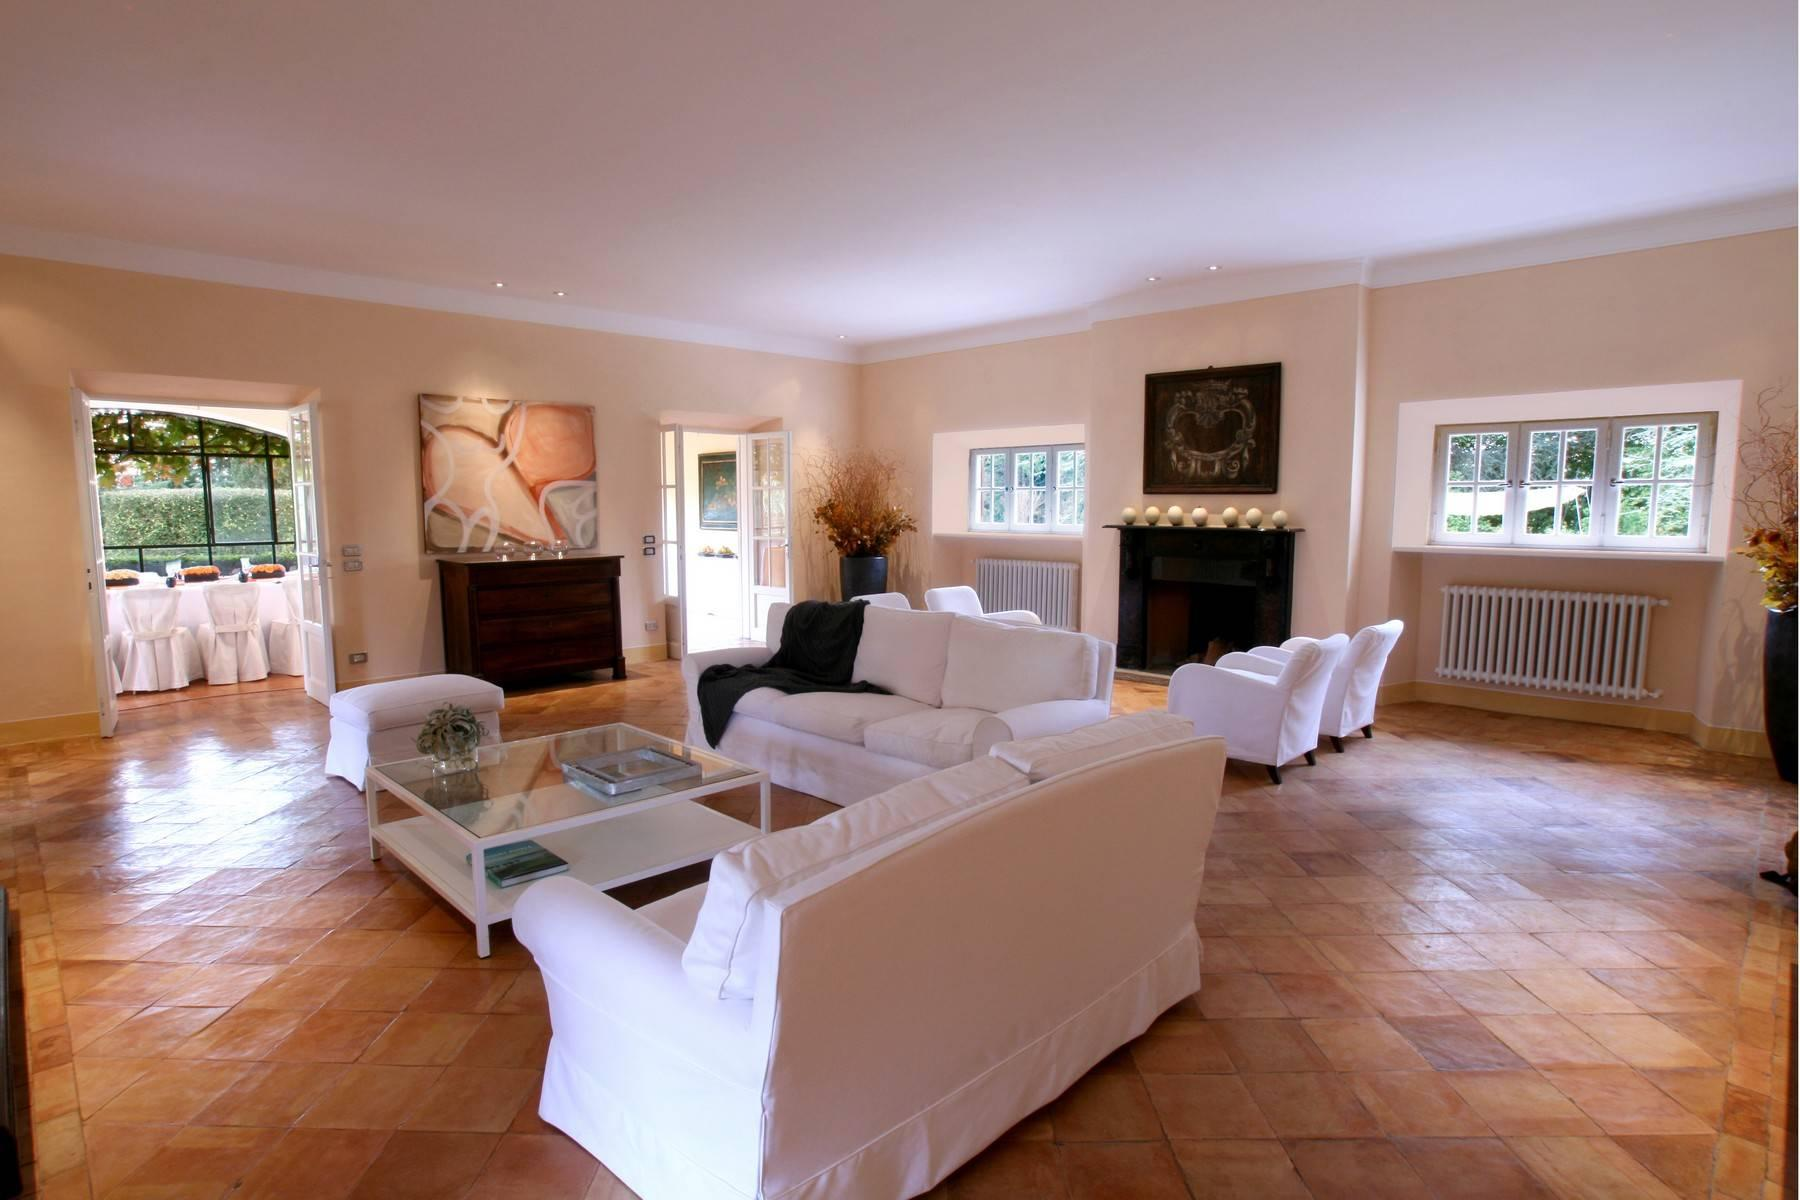 Claudia Estate: charm and elegance surrounded by nature - 15